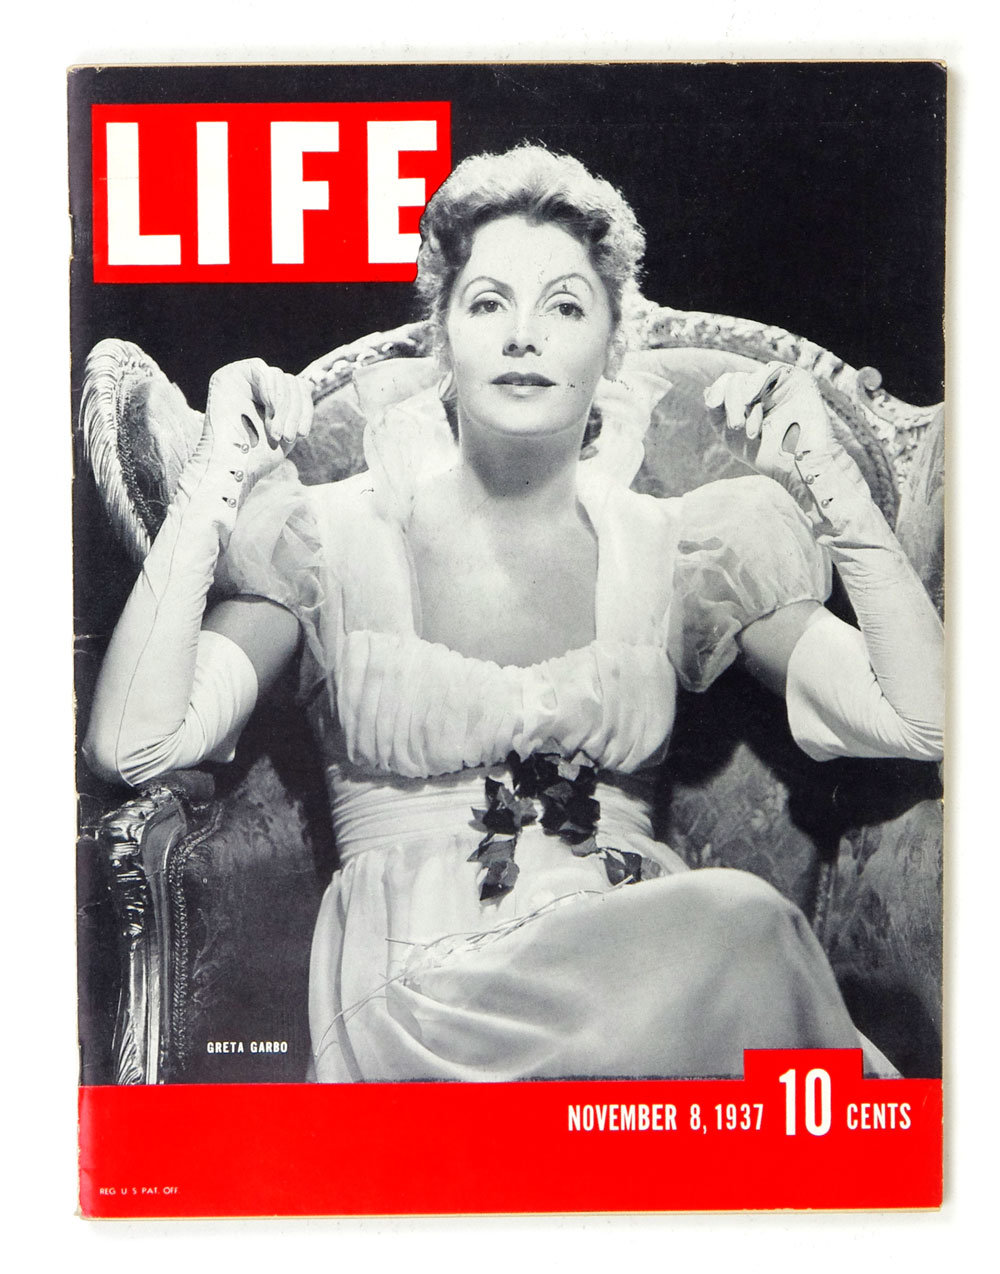 LIFE Magazine 1937 November 8 Greta Garbo